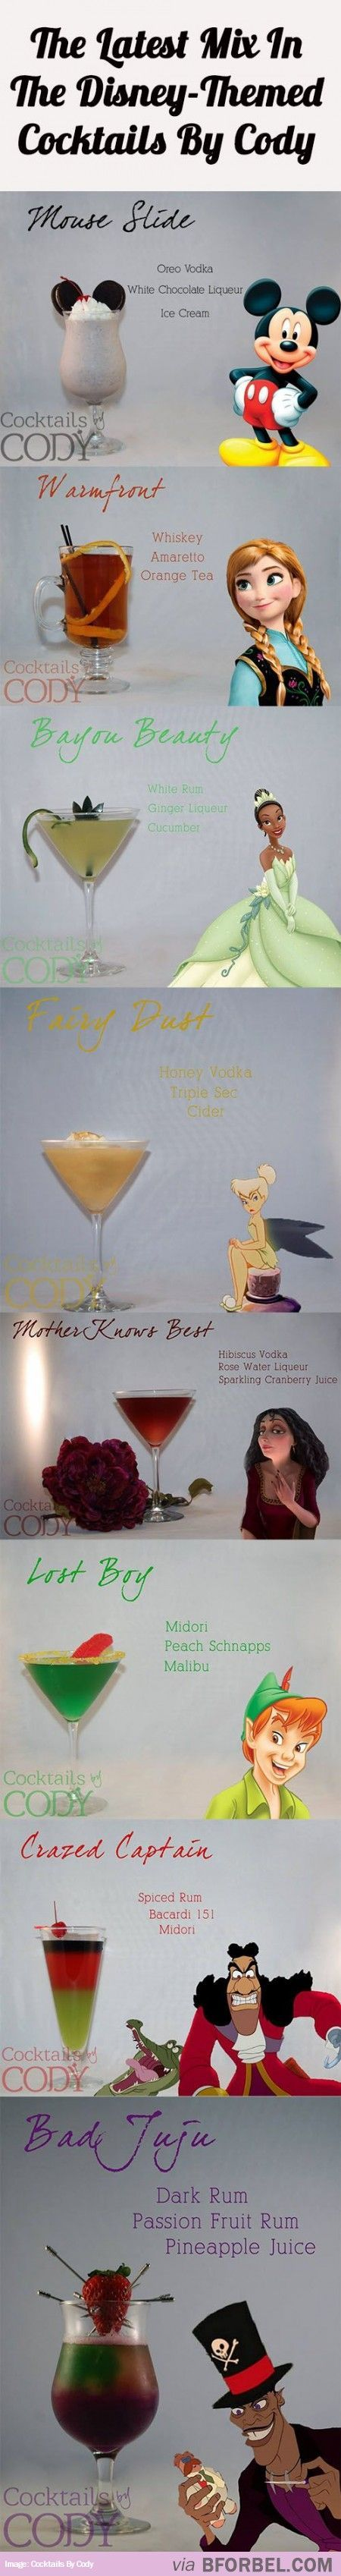 8 Disney-Themed Cocktails